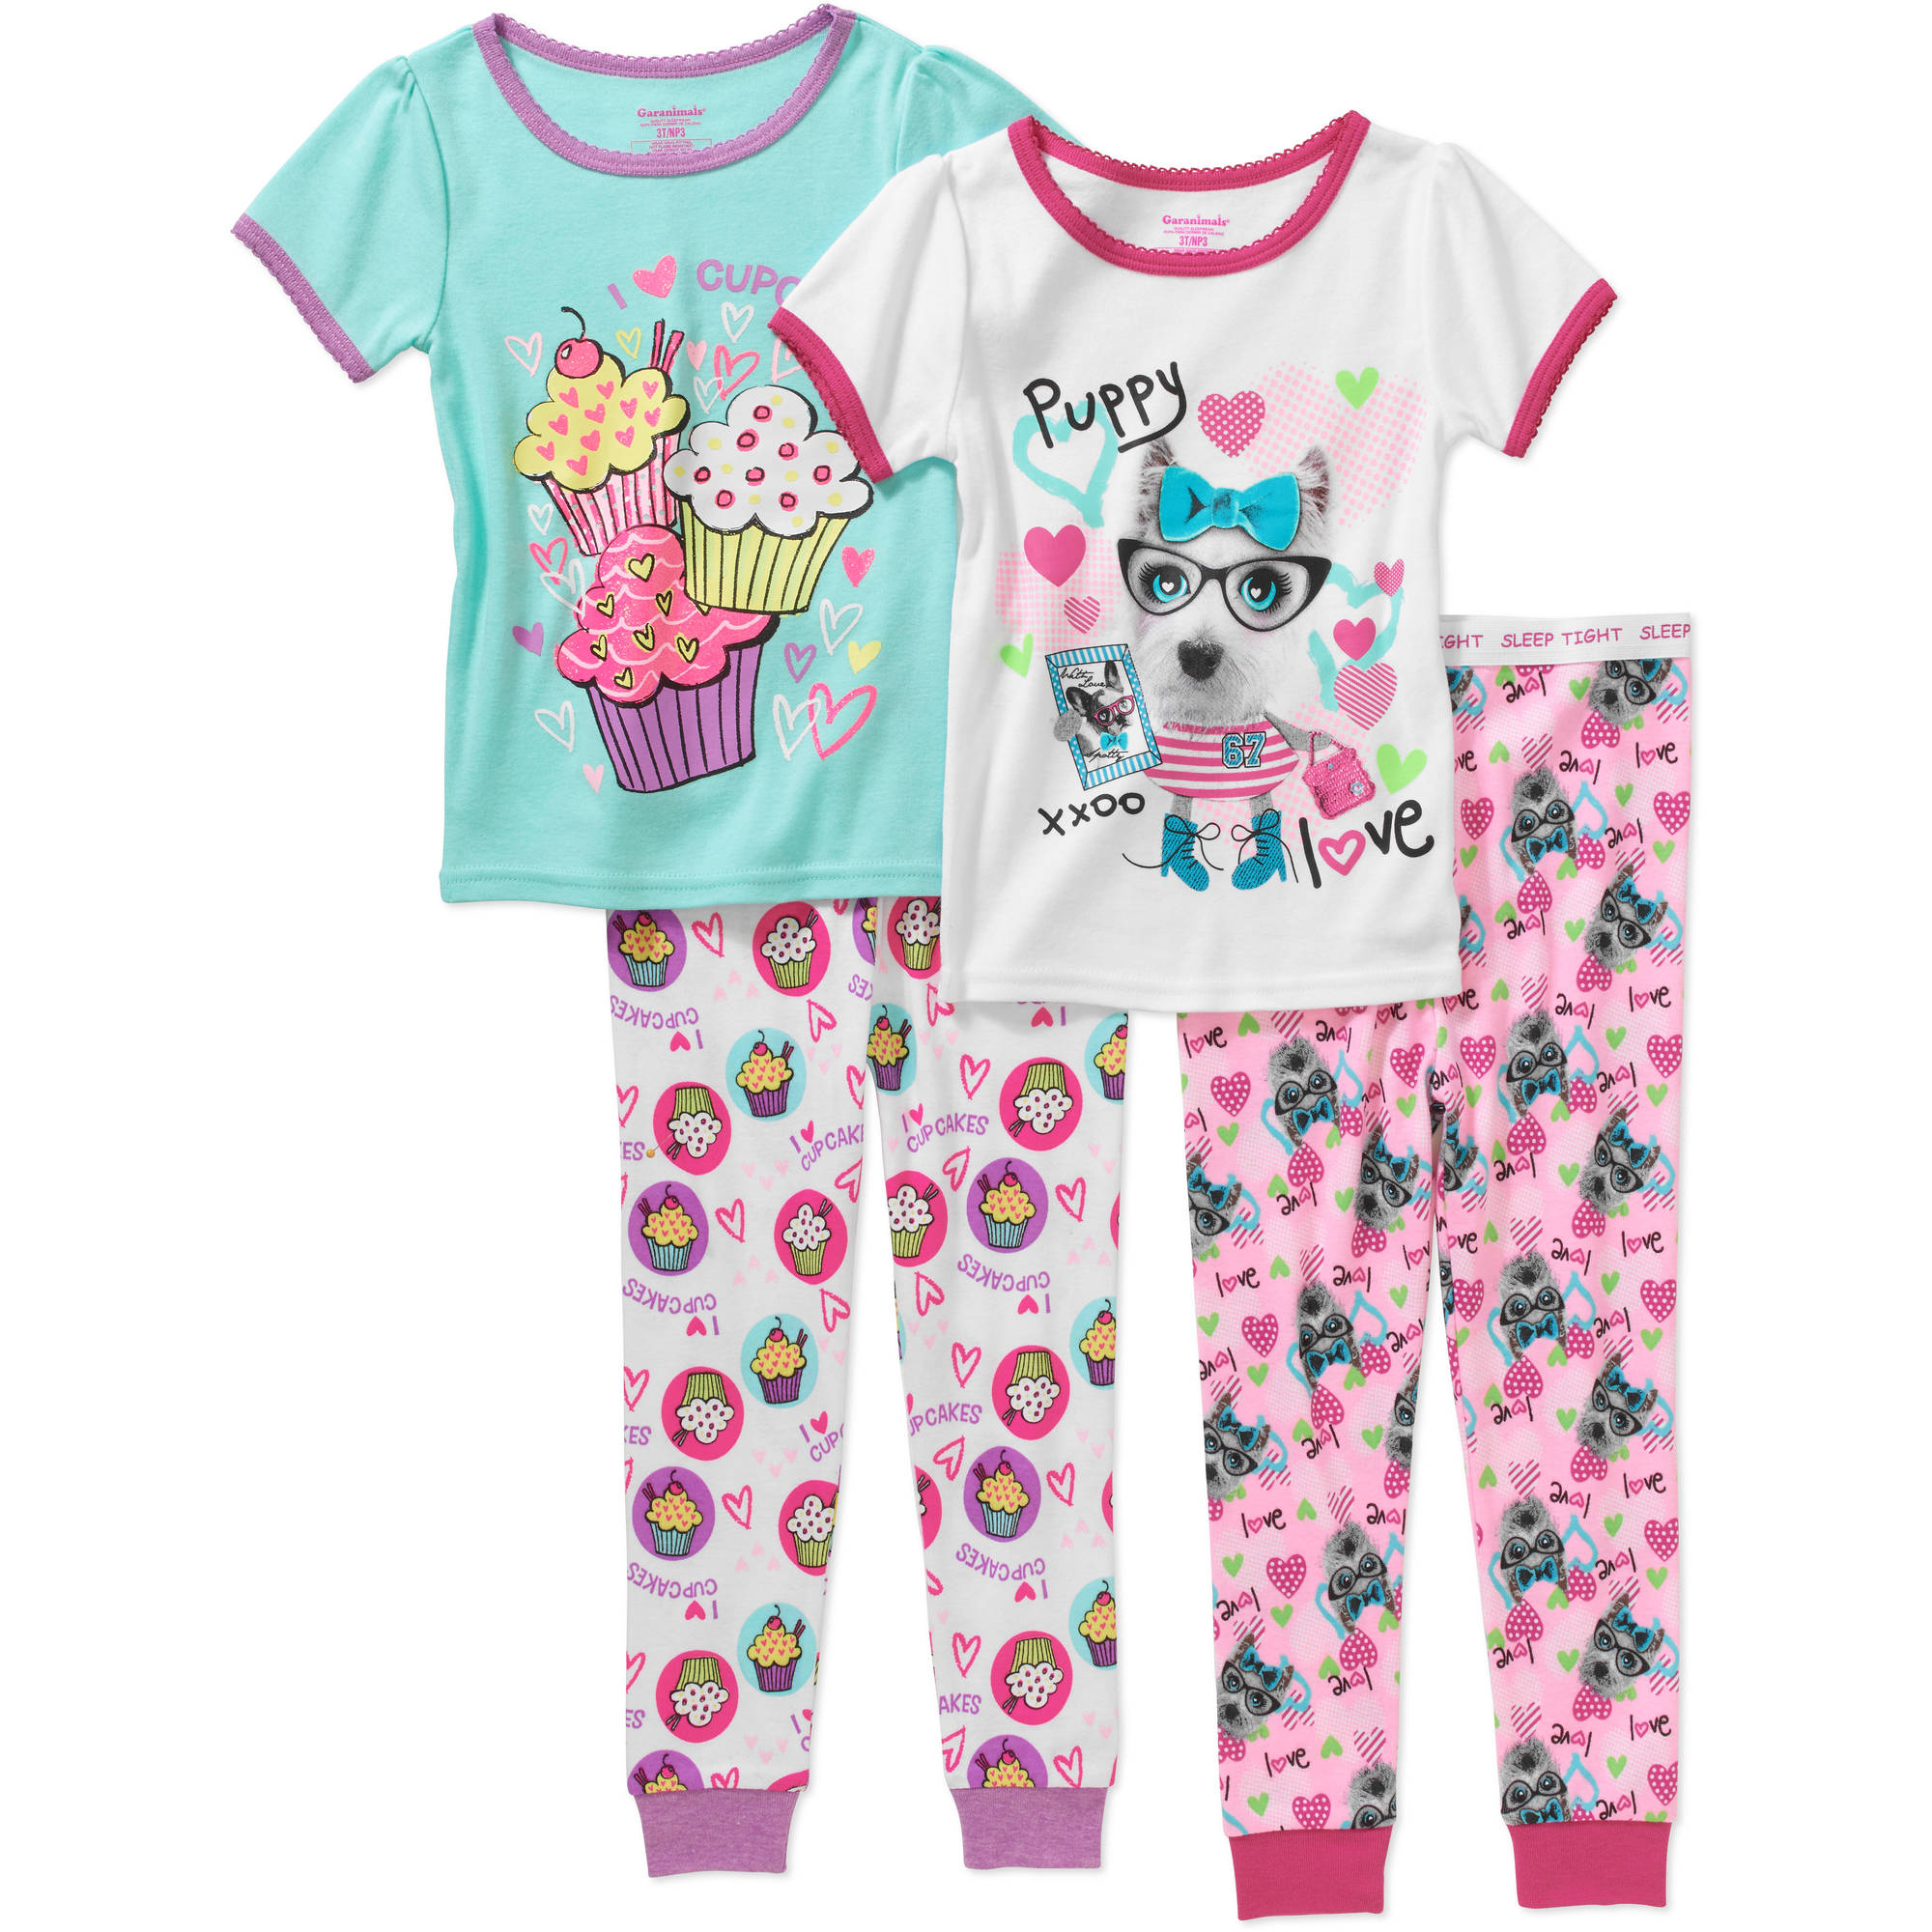 Garanimals Toddler Girl Tight-Fit Cotton Pajamas, 4-Piece Set